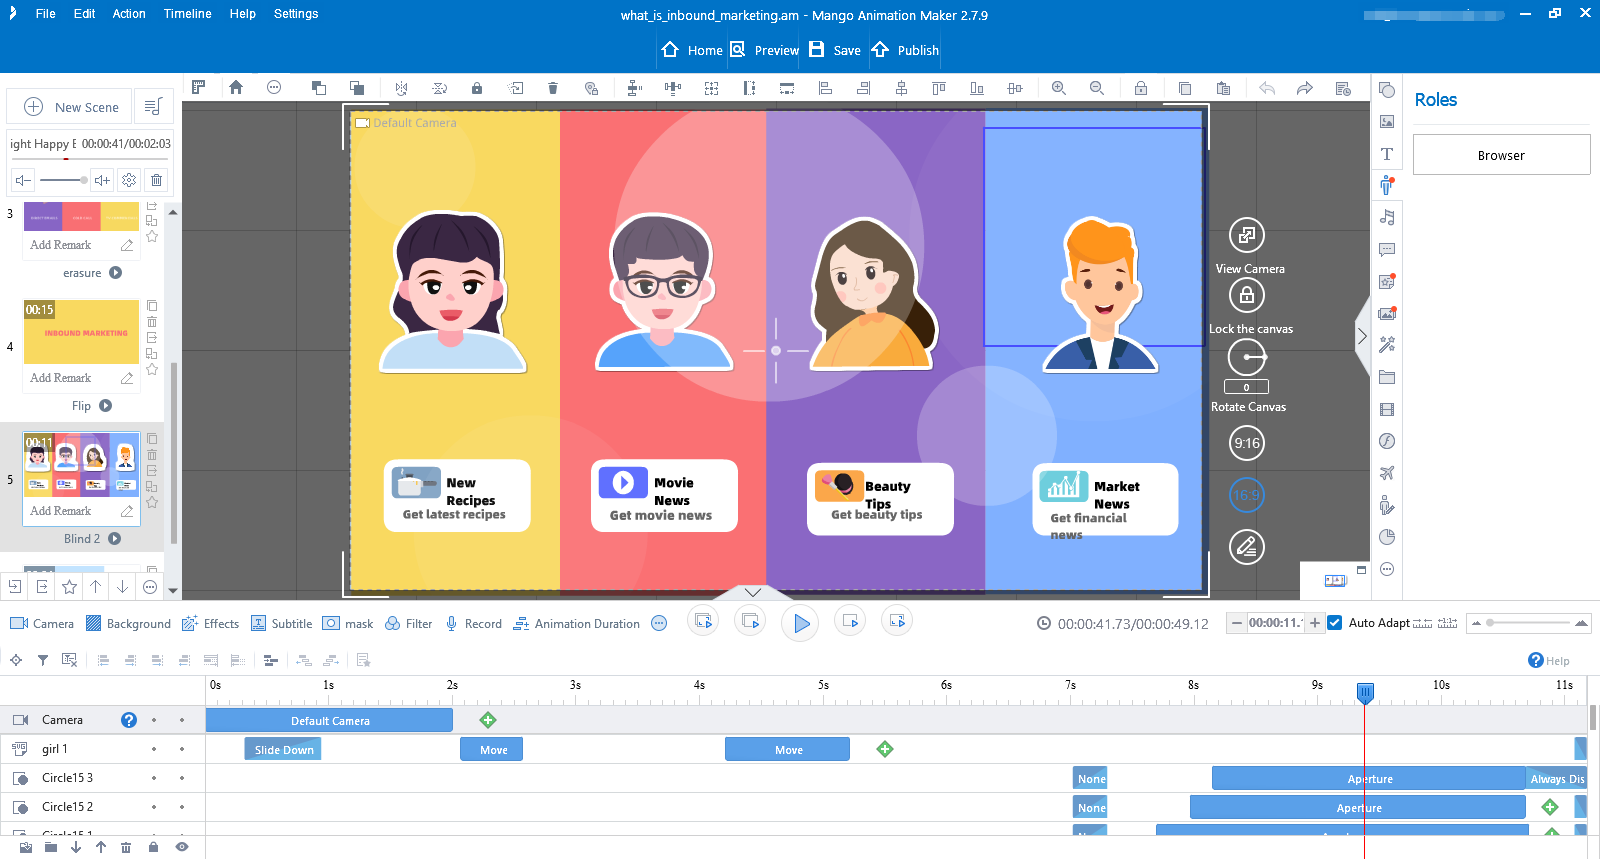 Mango Animate Animated Ad Maker Helps Businesses Make Results Driven Ads 1